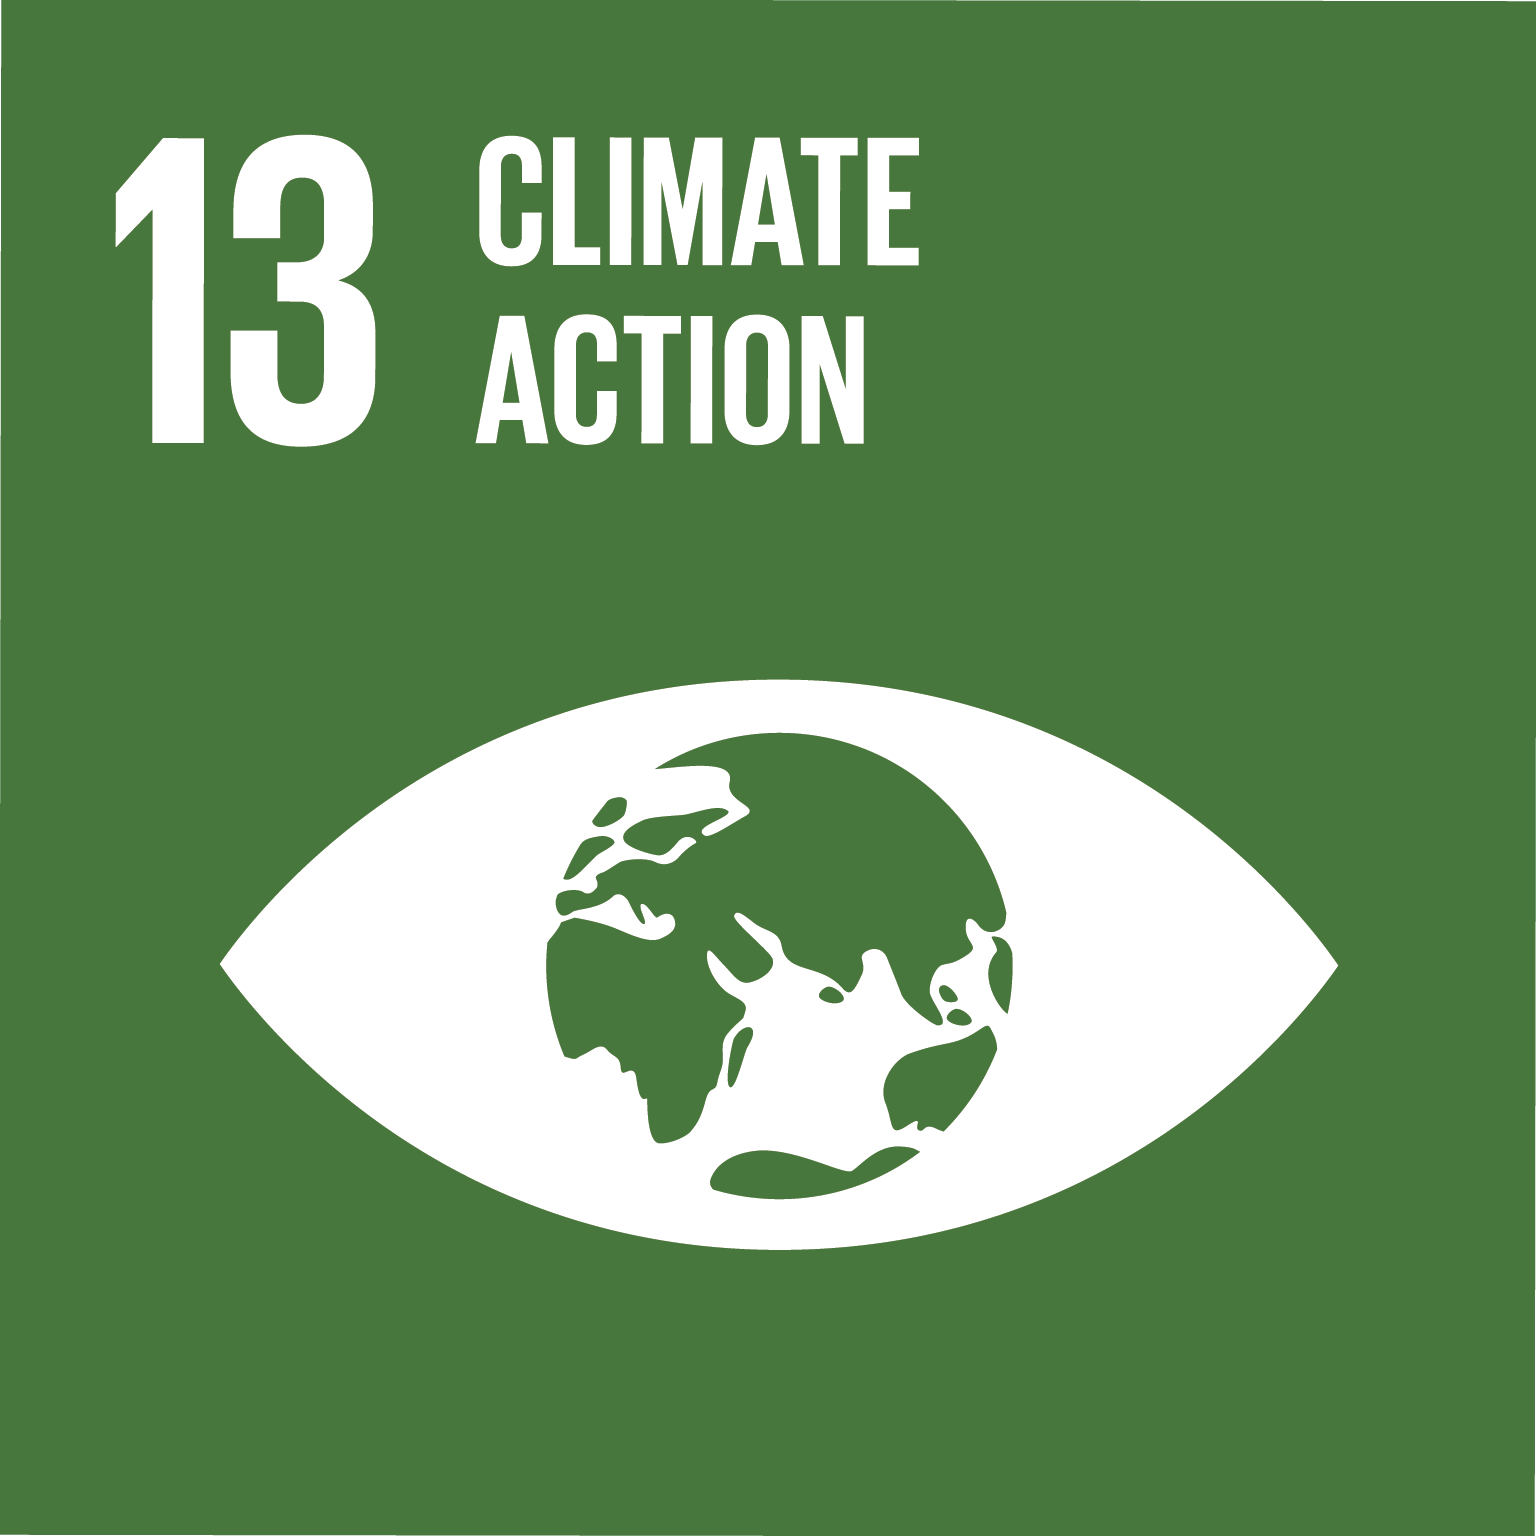 Sustainable Development Goal SDG 13 Climate